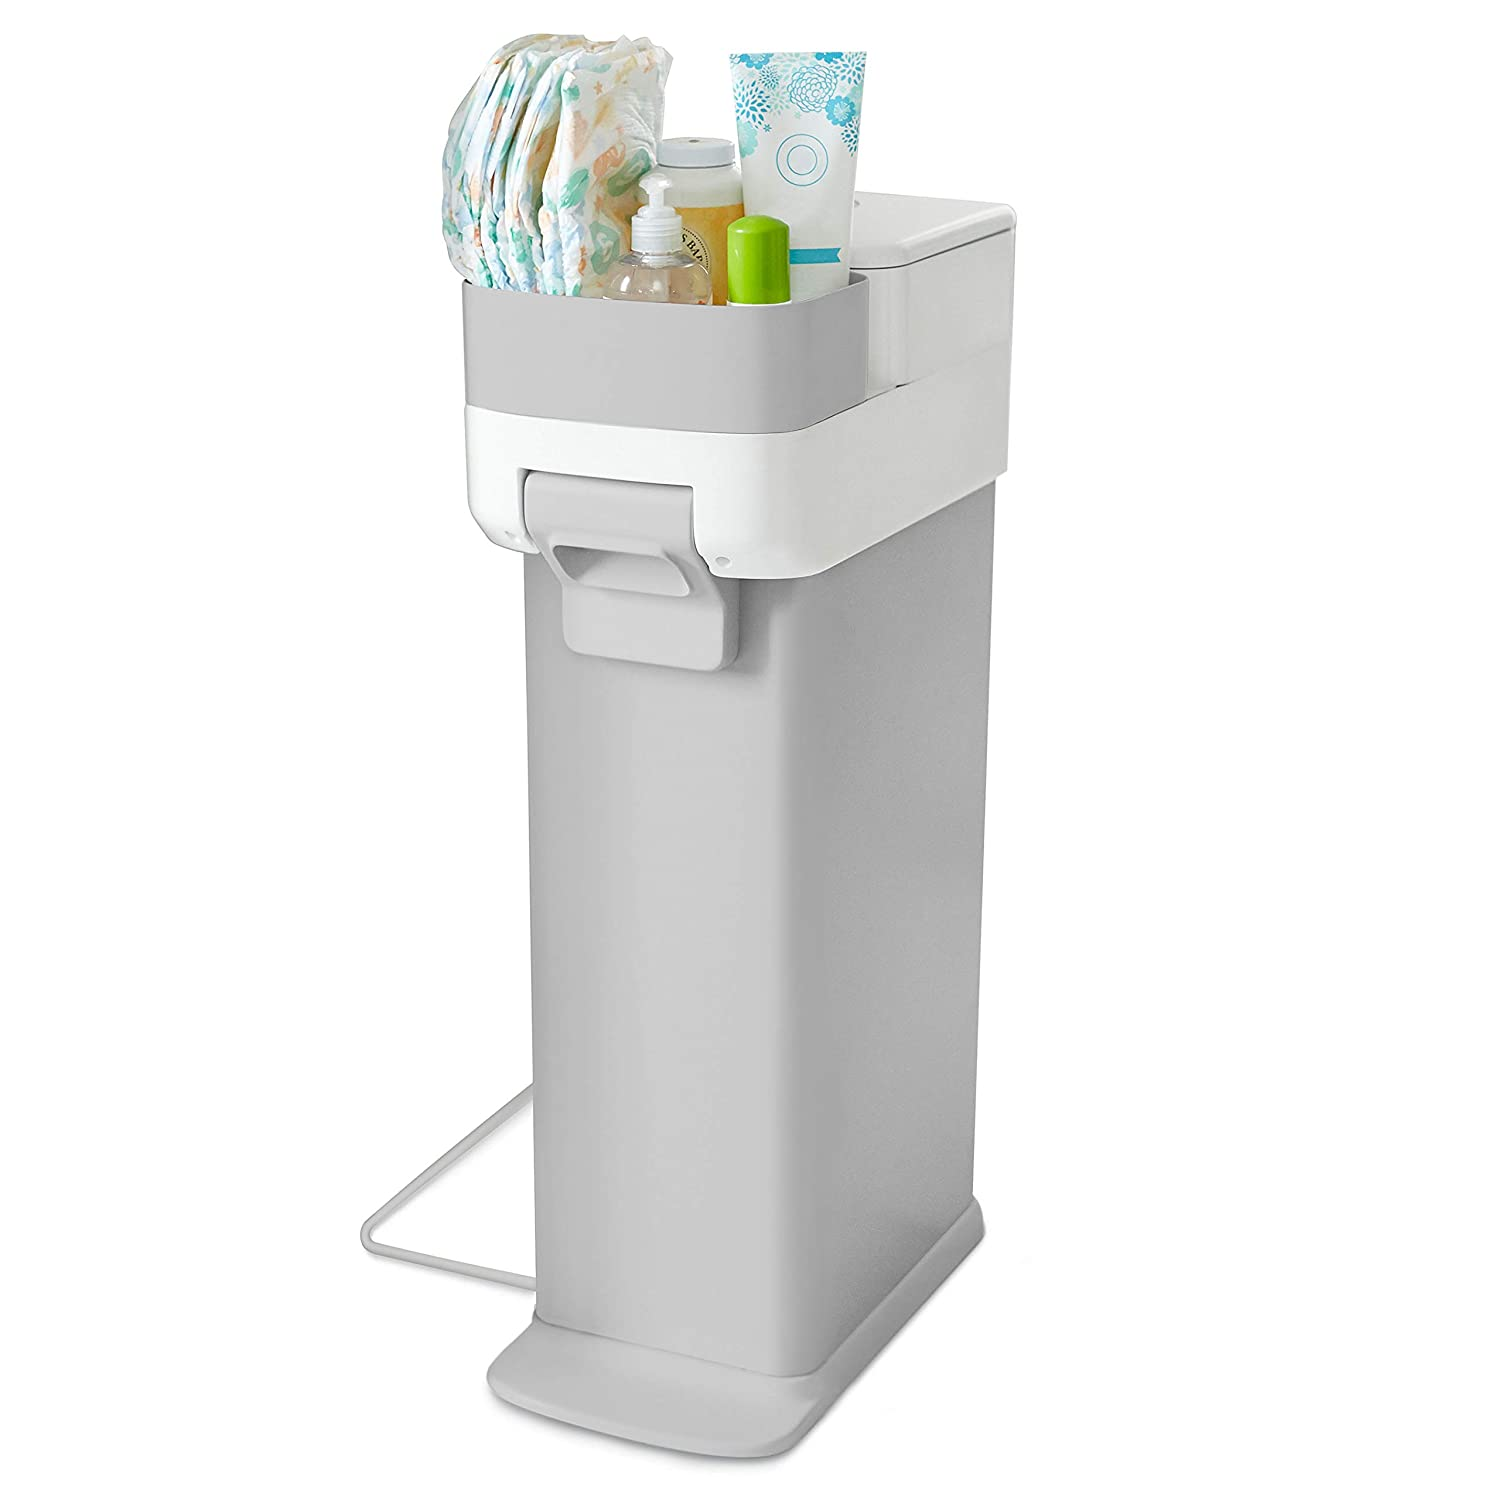 Top 10 Best Diaper Pails (2020 Reviews & Buying Guide) 8